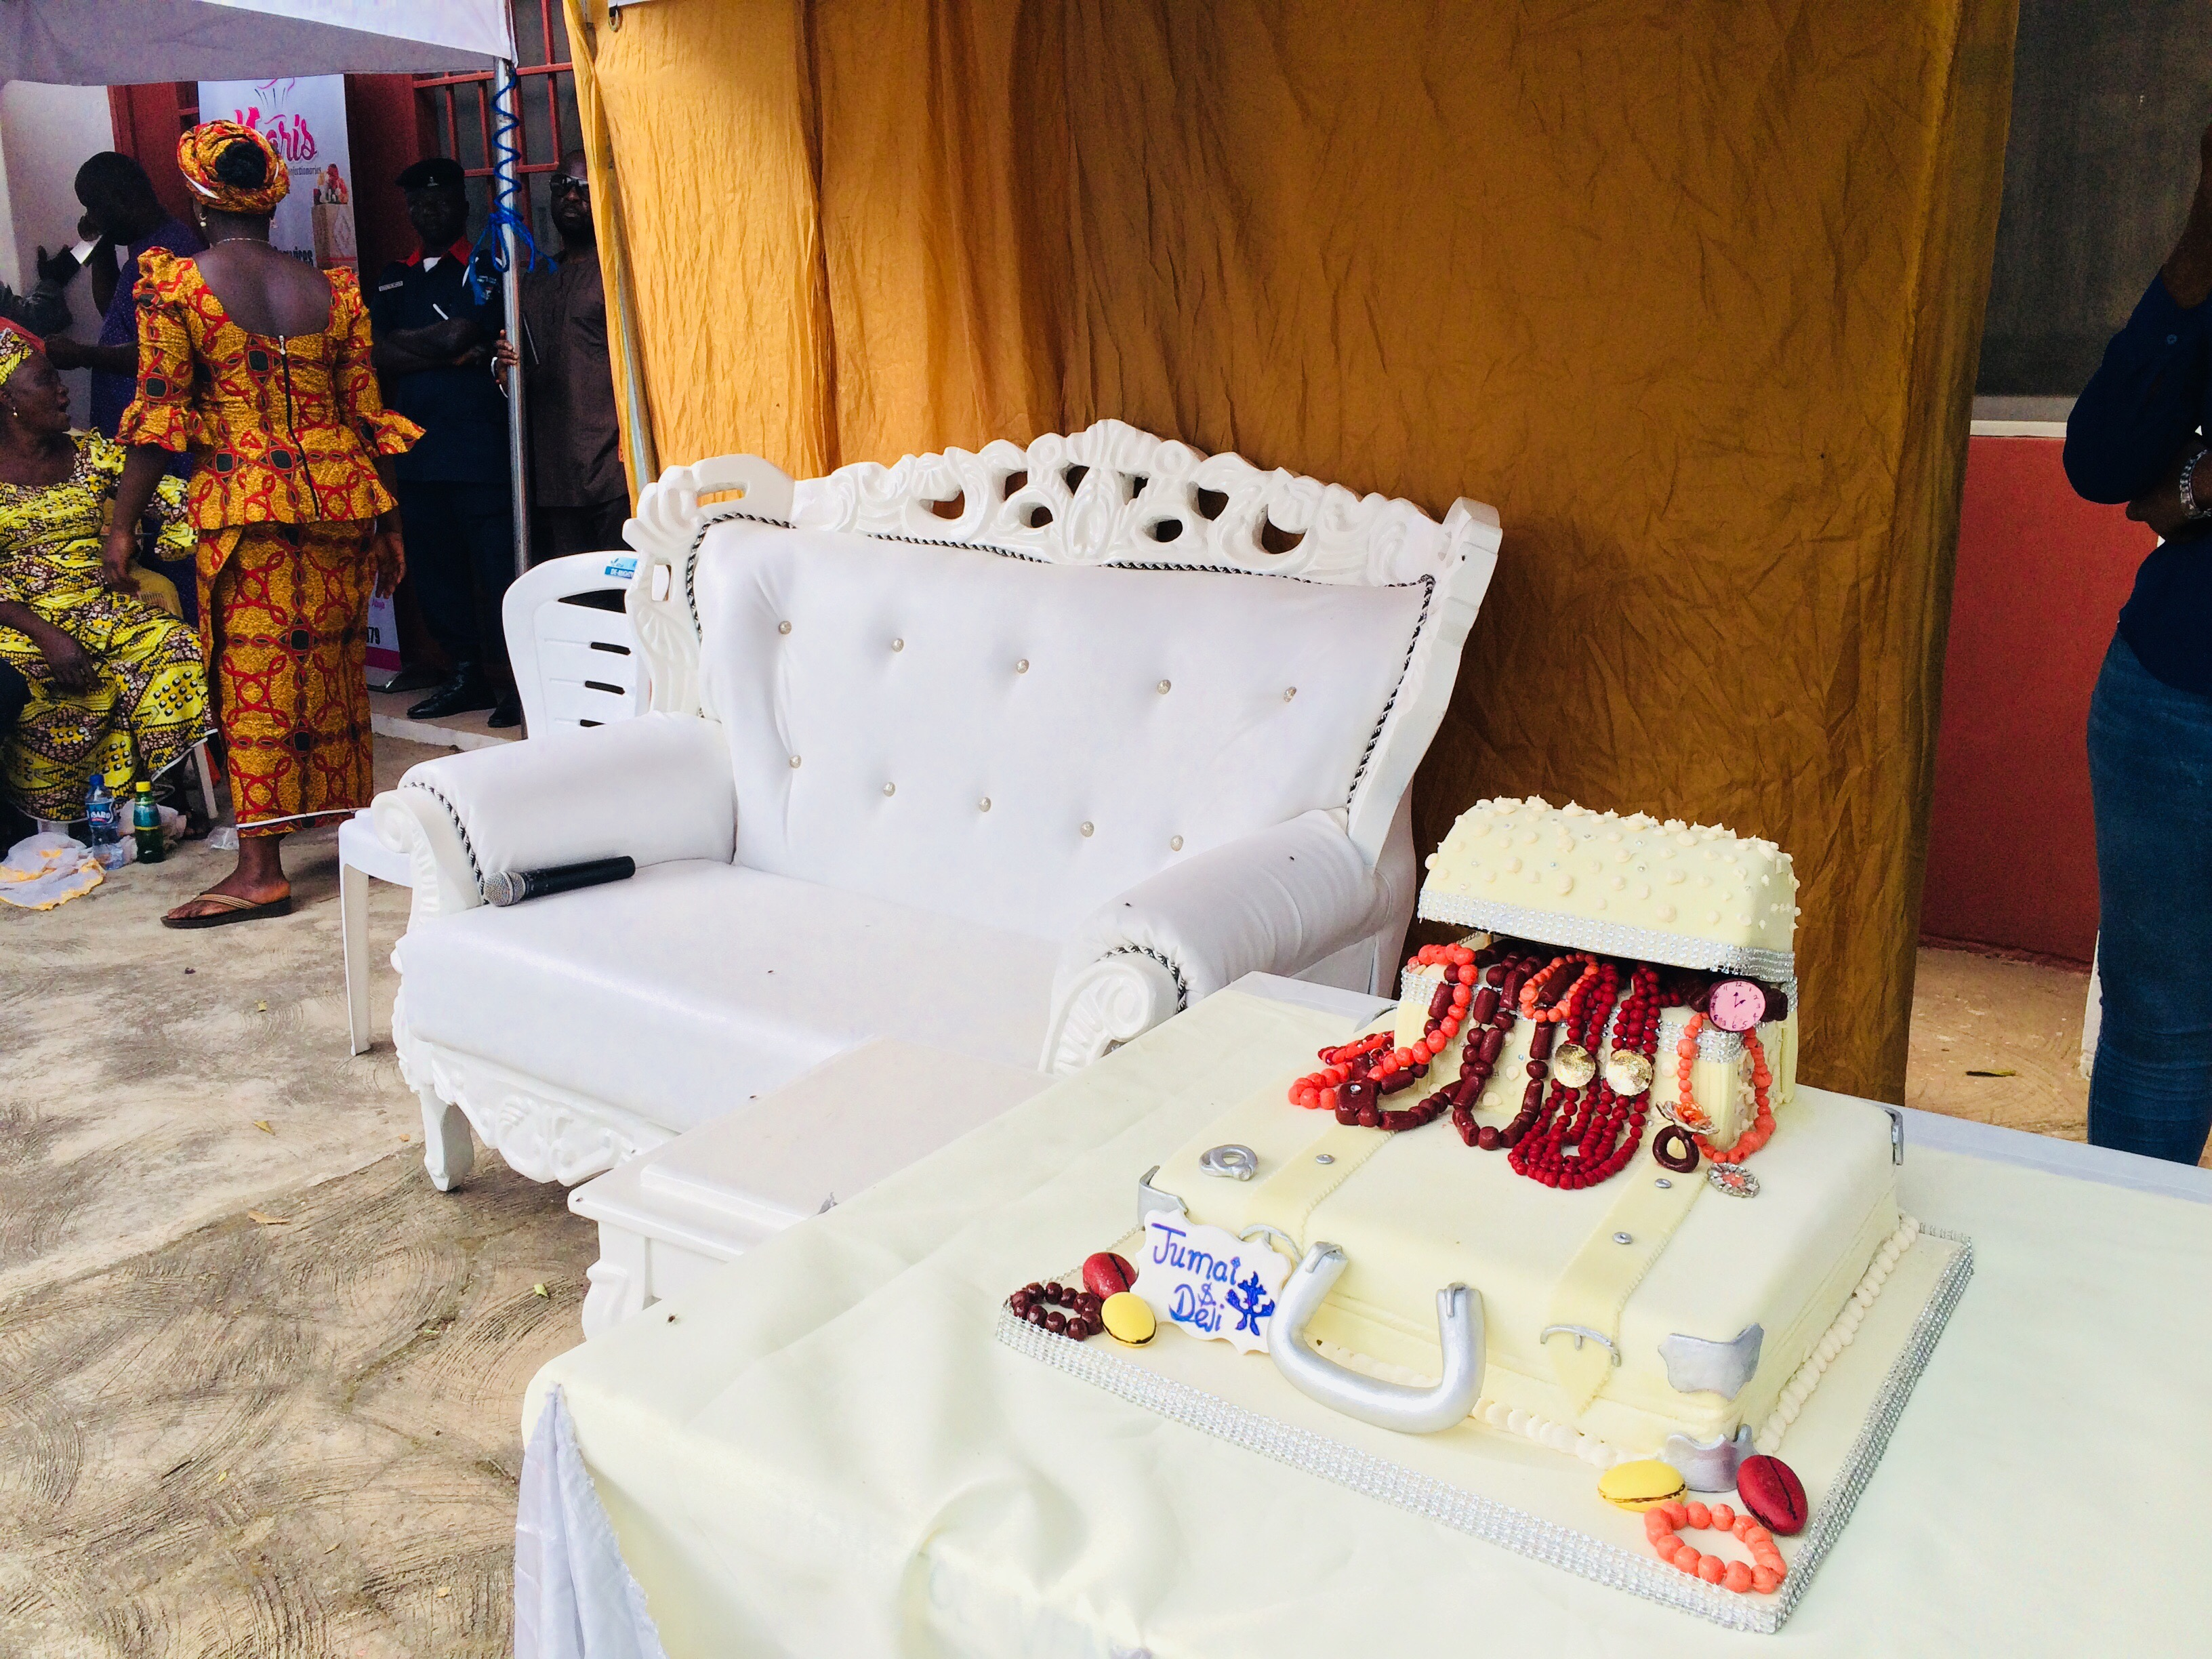 The royal seat for the bride and groom